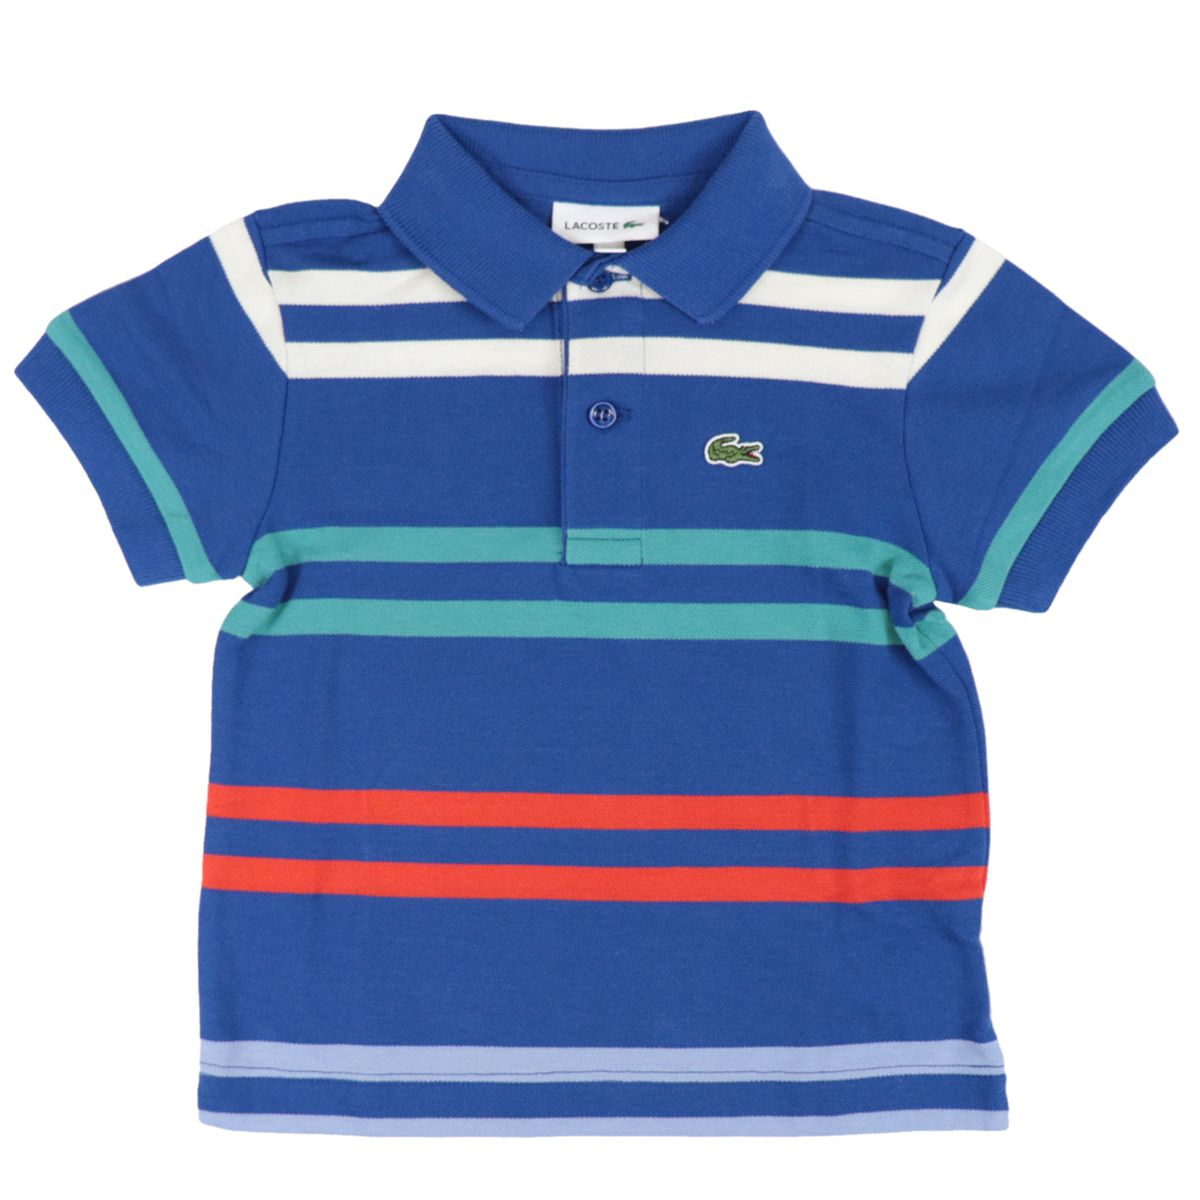 Cotton piqué polo shirt with striped pattern and logo Light blue Lacoste